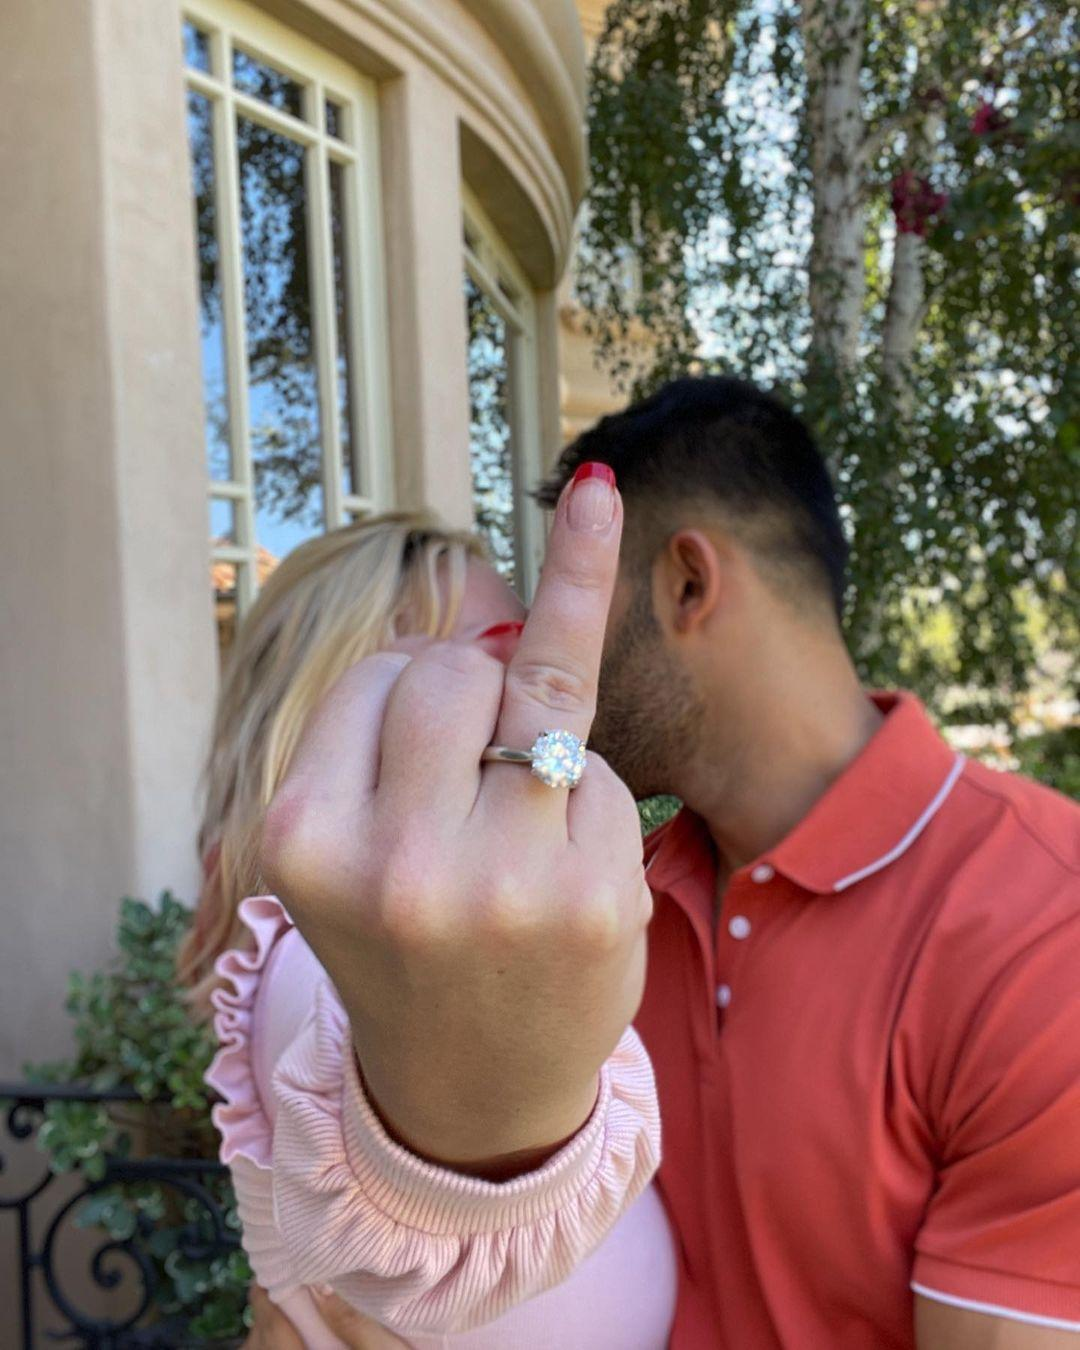 Britney Spears DELETES Instagram To Send A 'Powerful Message'